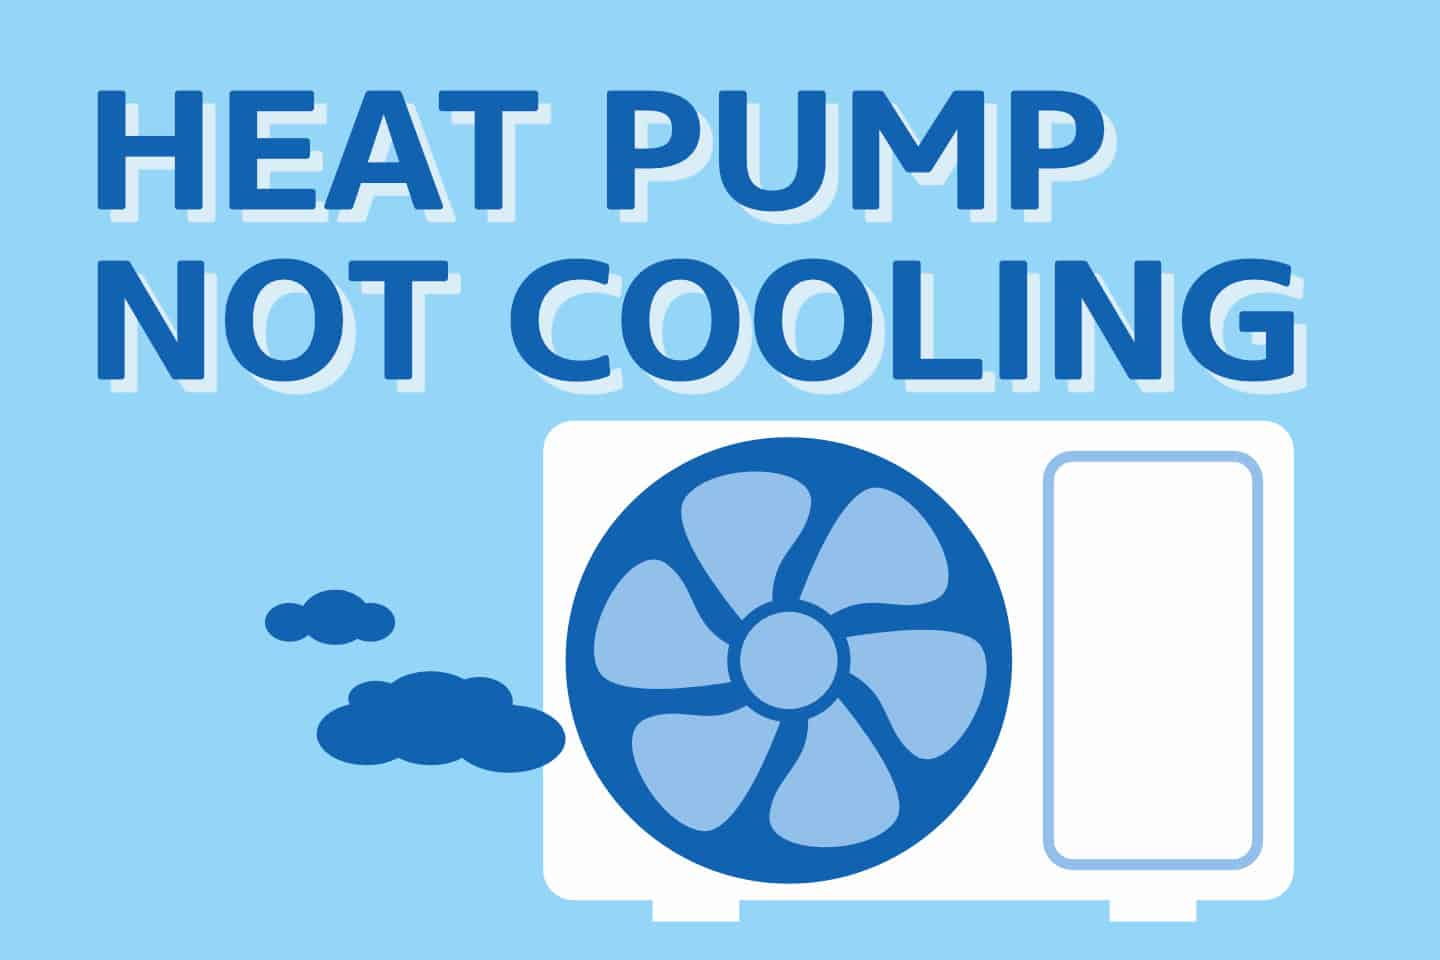 ❄️ 5 Hidden Signs Why is Heat Pump Not Cooling Your Home